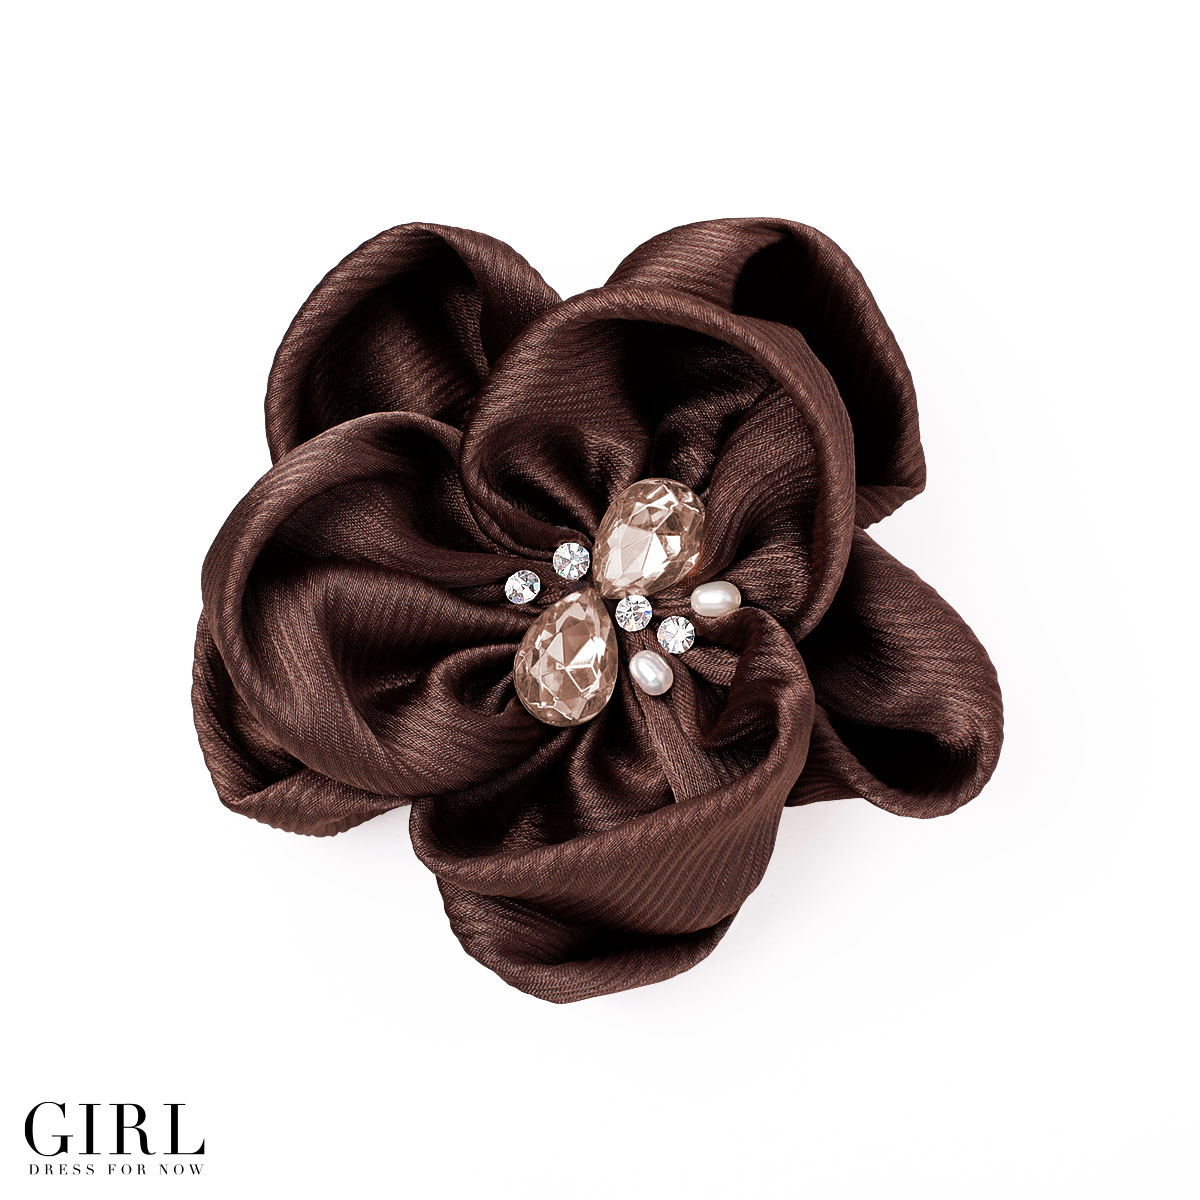 Corsage ★ 9 colors cute round shape Barrette formal 艶めき satin corsage flower party ◆ wedding ◆ entrance ceremony, graduation and matriculation, graduation ceremony and party kimono yukata ornament 10P13oct13_b